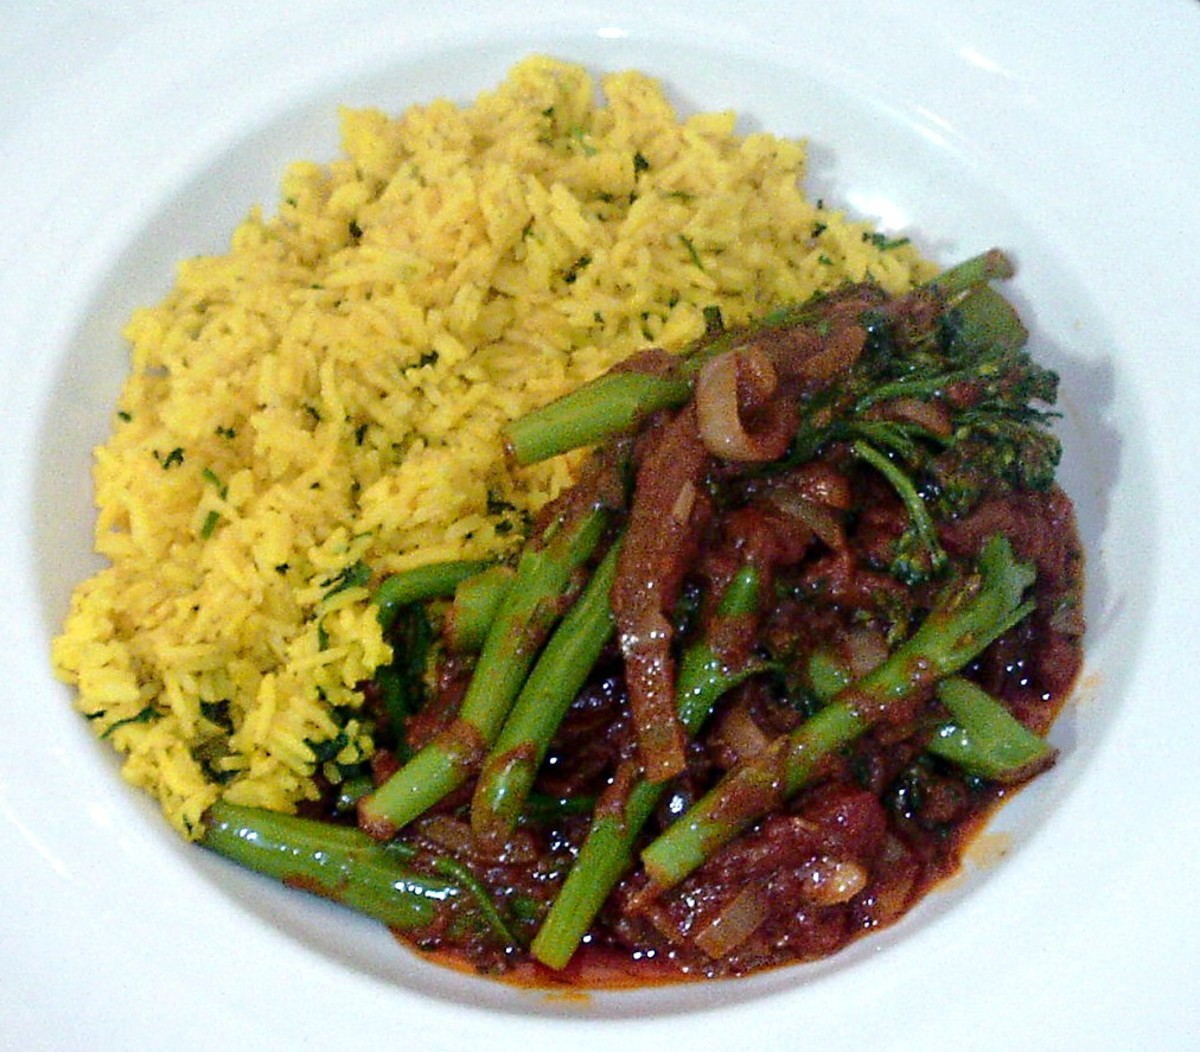 Curried tenderstem broccoli is served with a bed of turmeric and herb rice